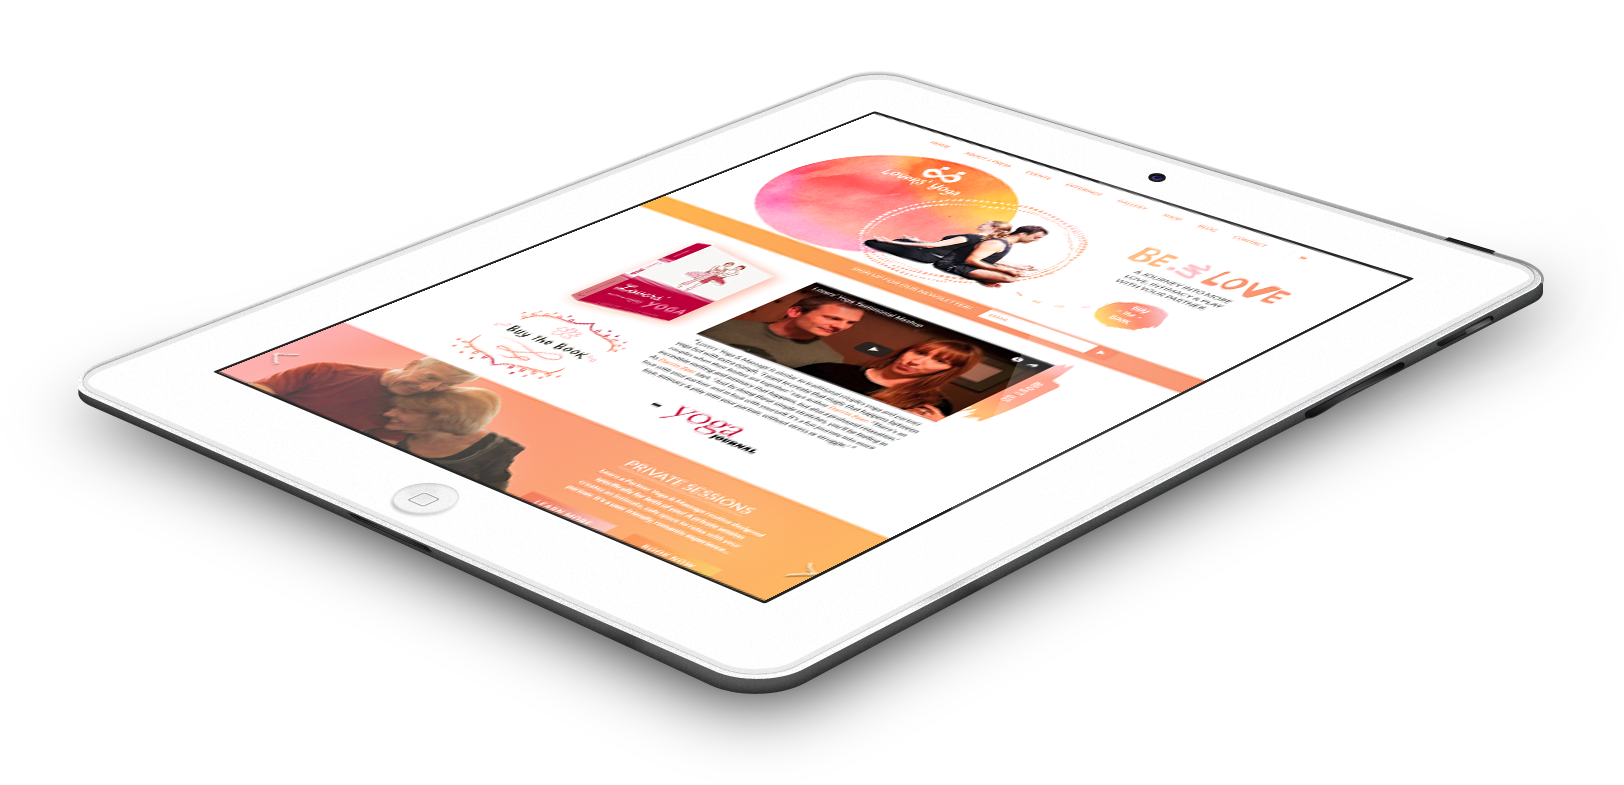 lovers-yoga-ipad - Case Study : Lovers' Yoga